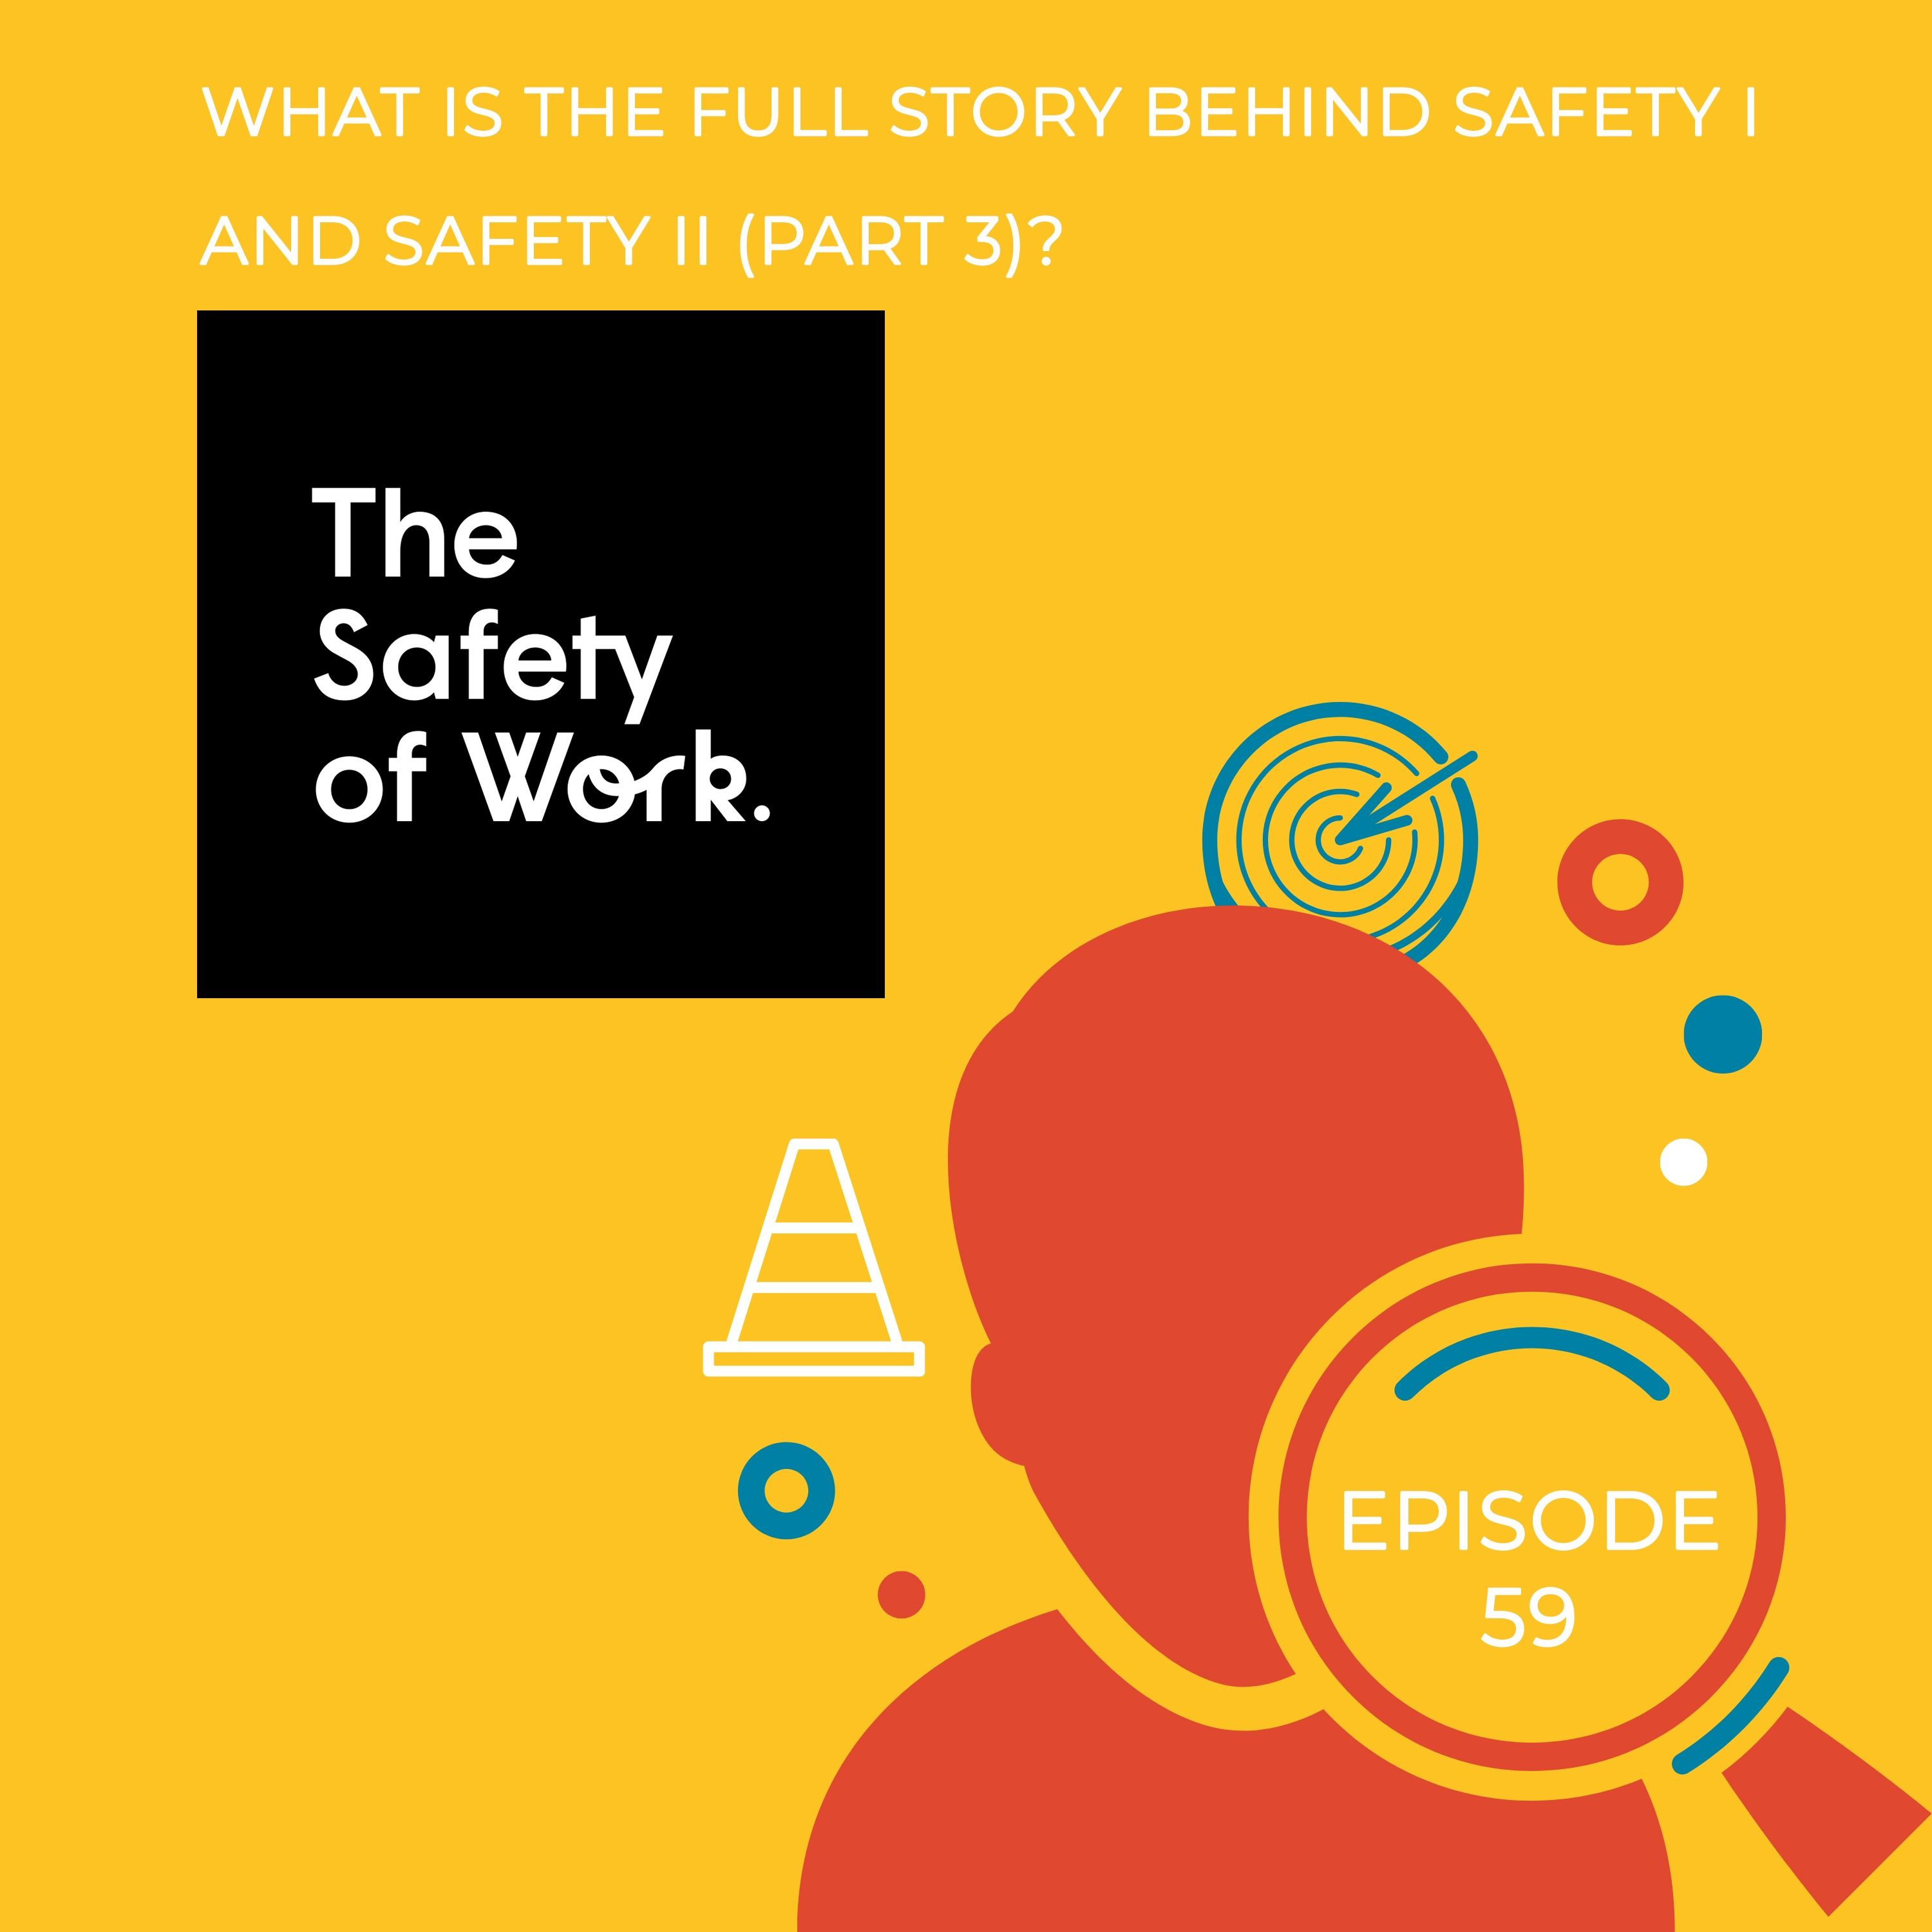 Ep. 59 What is the full story behind safety I and safety II (Part 3)?